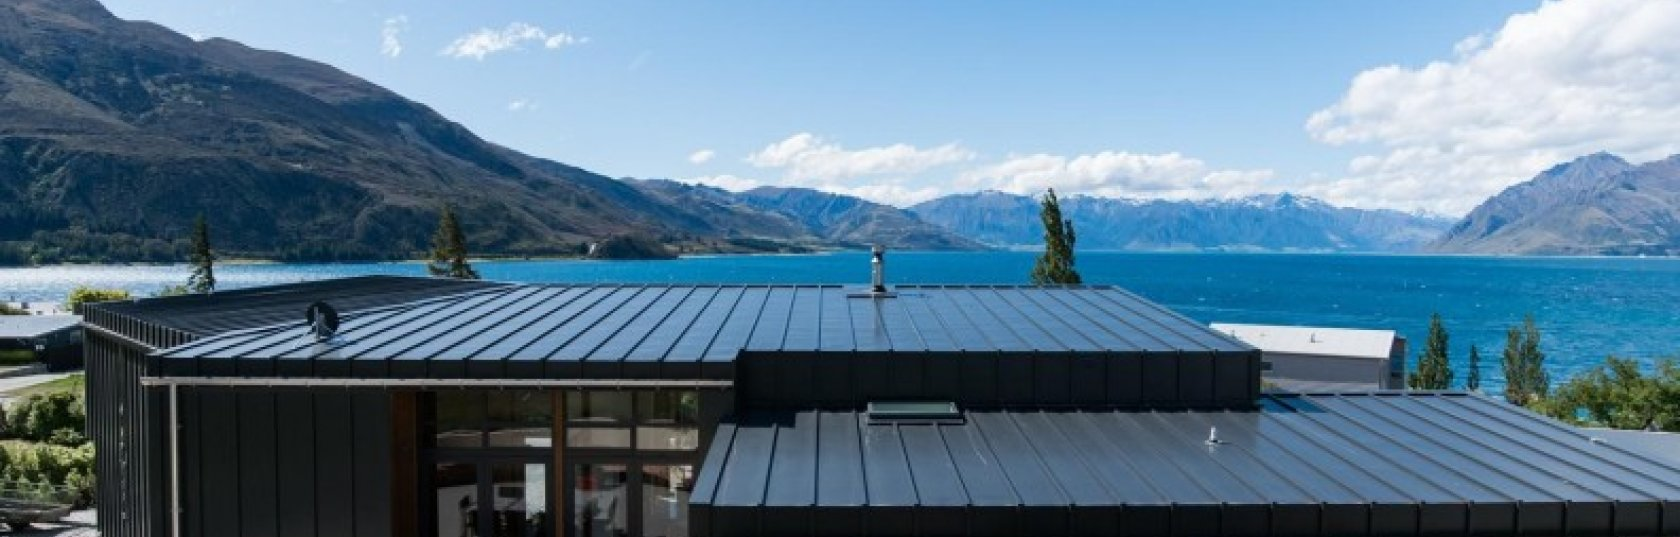 Designing for the extremes: Central Otago